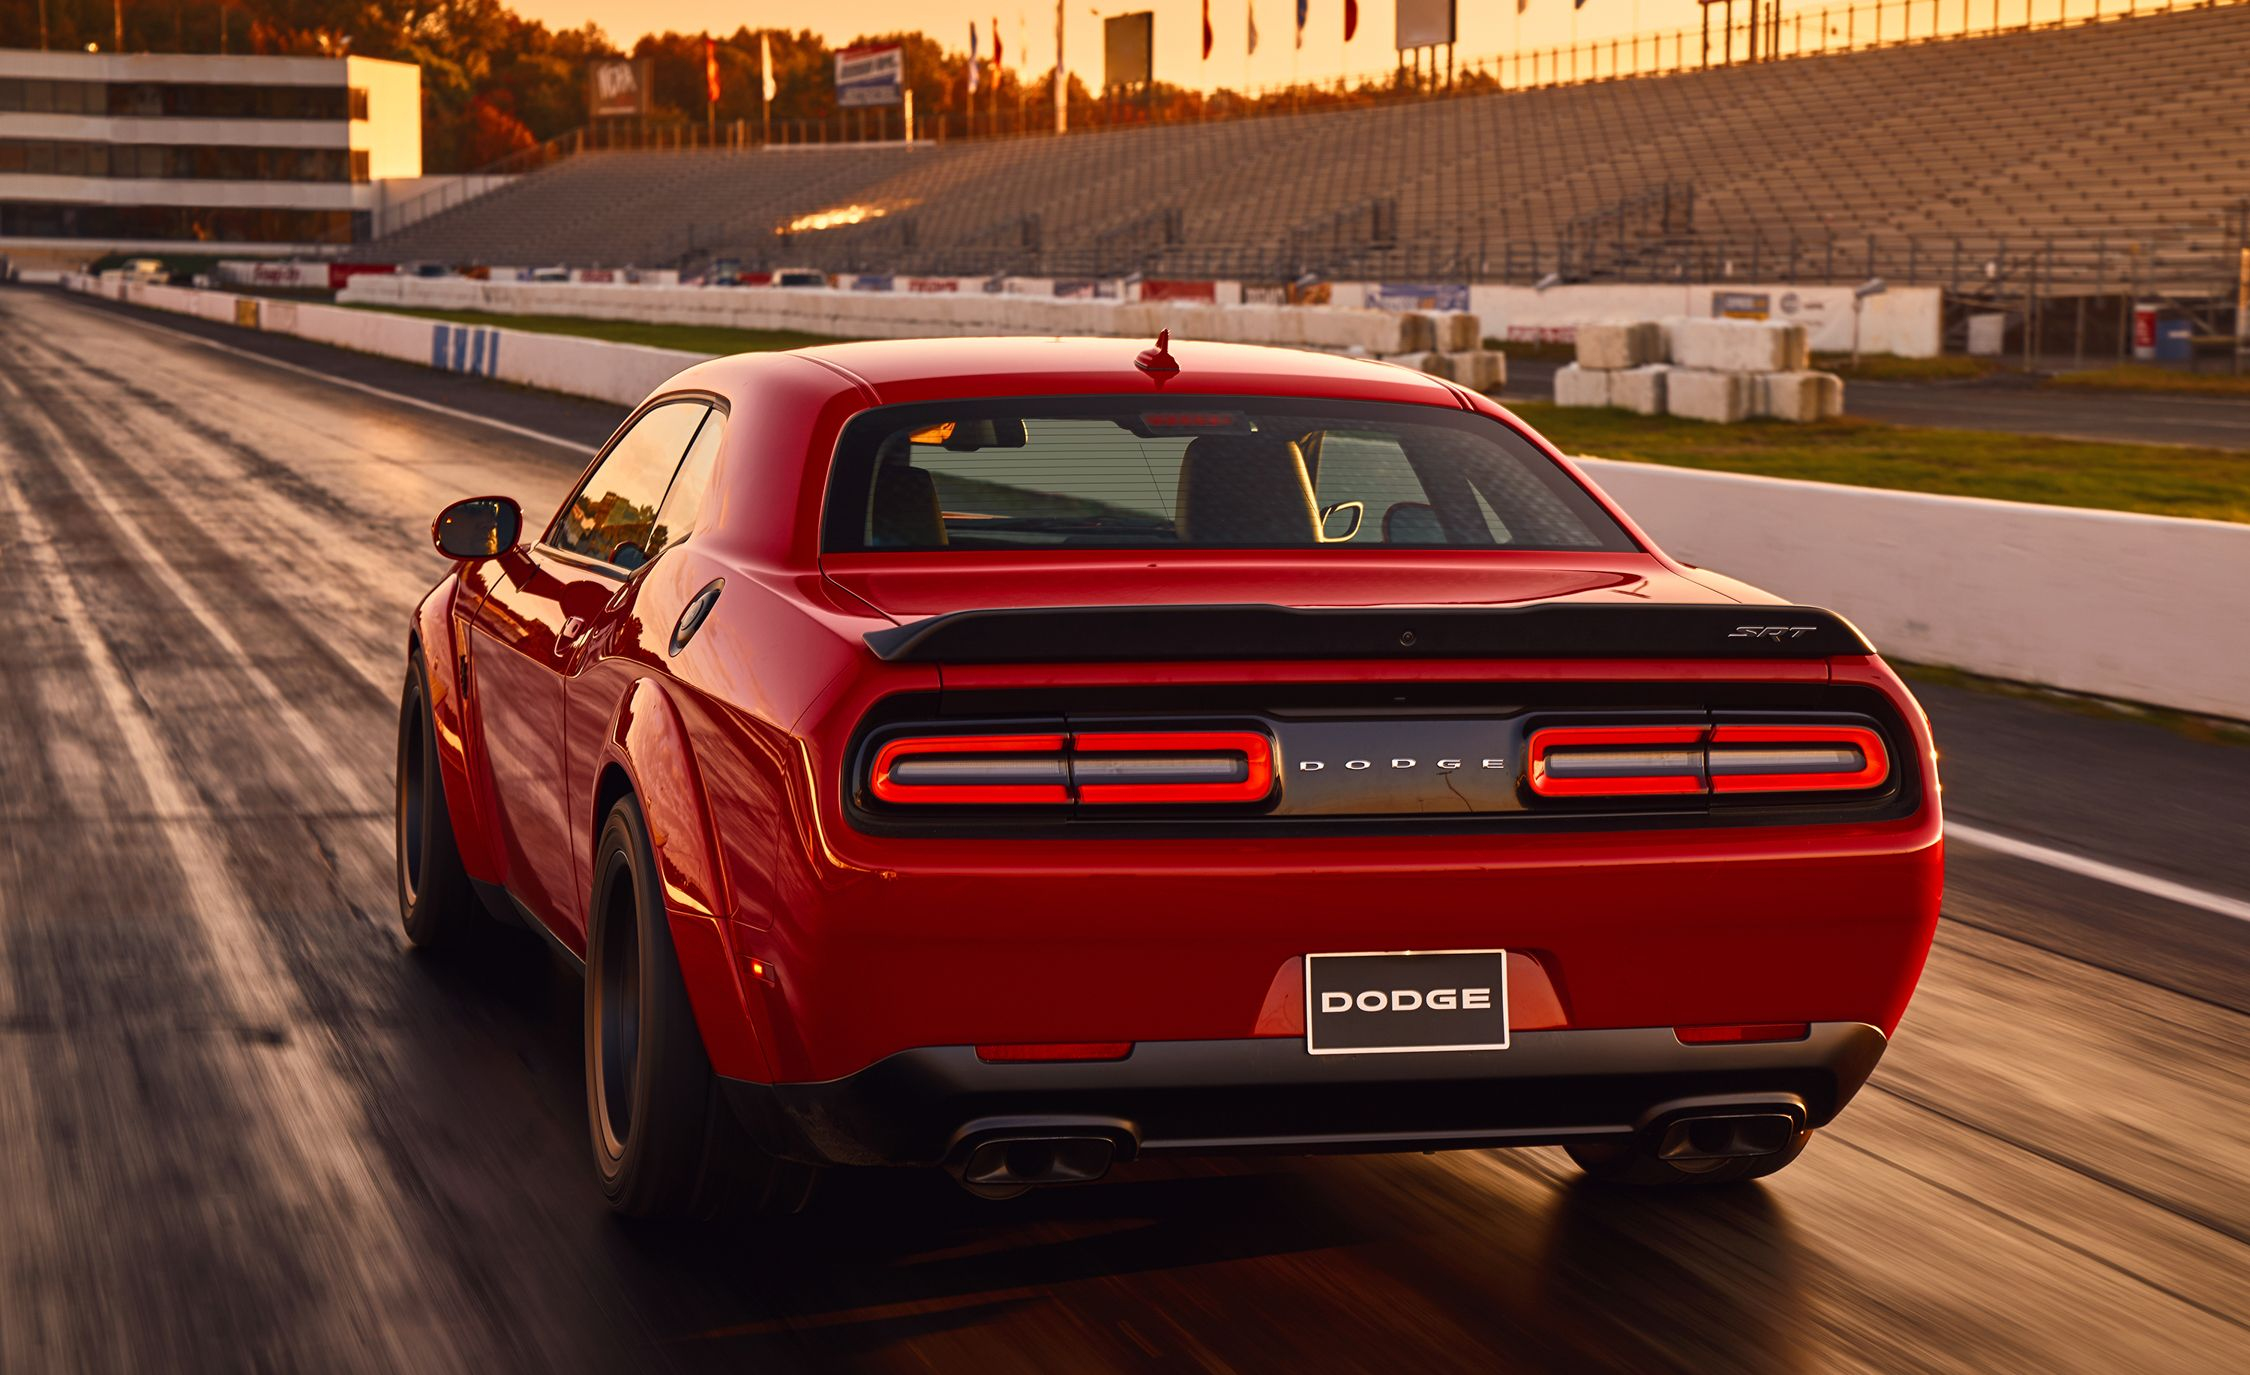 Dodge Challenger Srt Demon Reviews Price Photos And Specs Car Driver